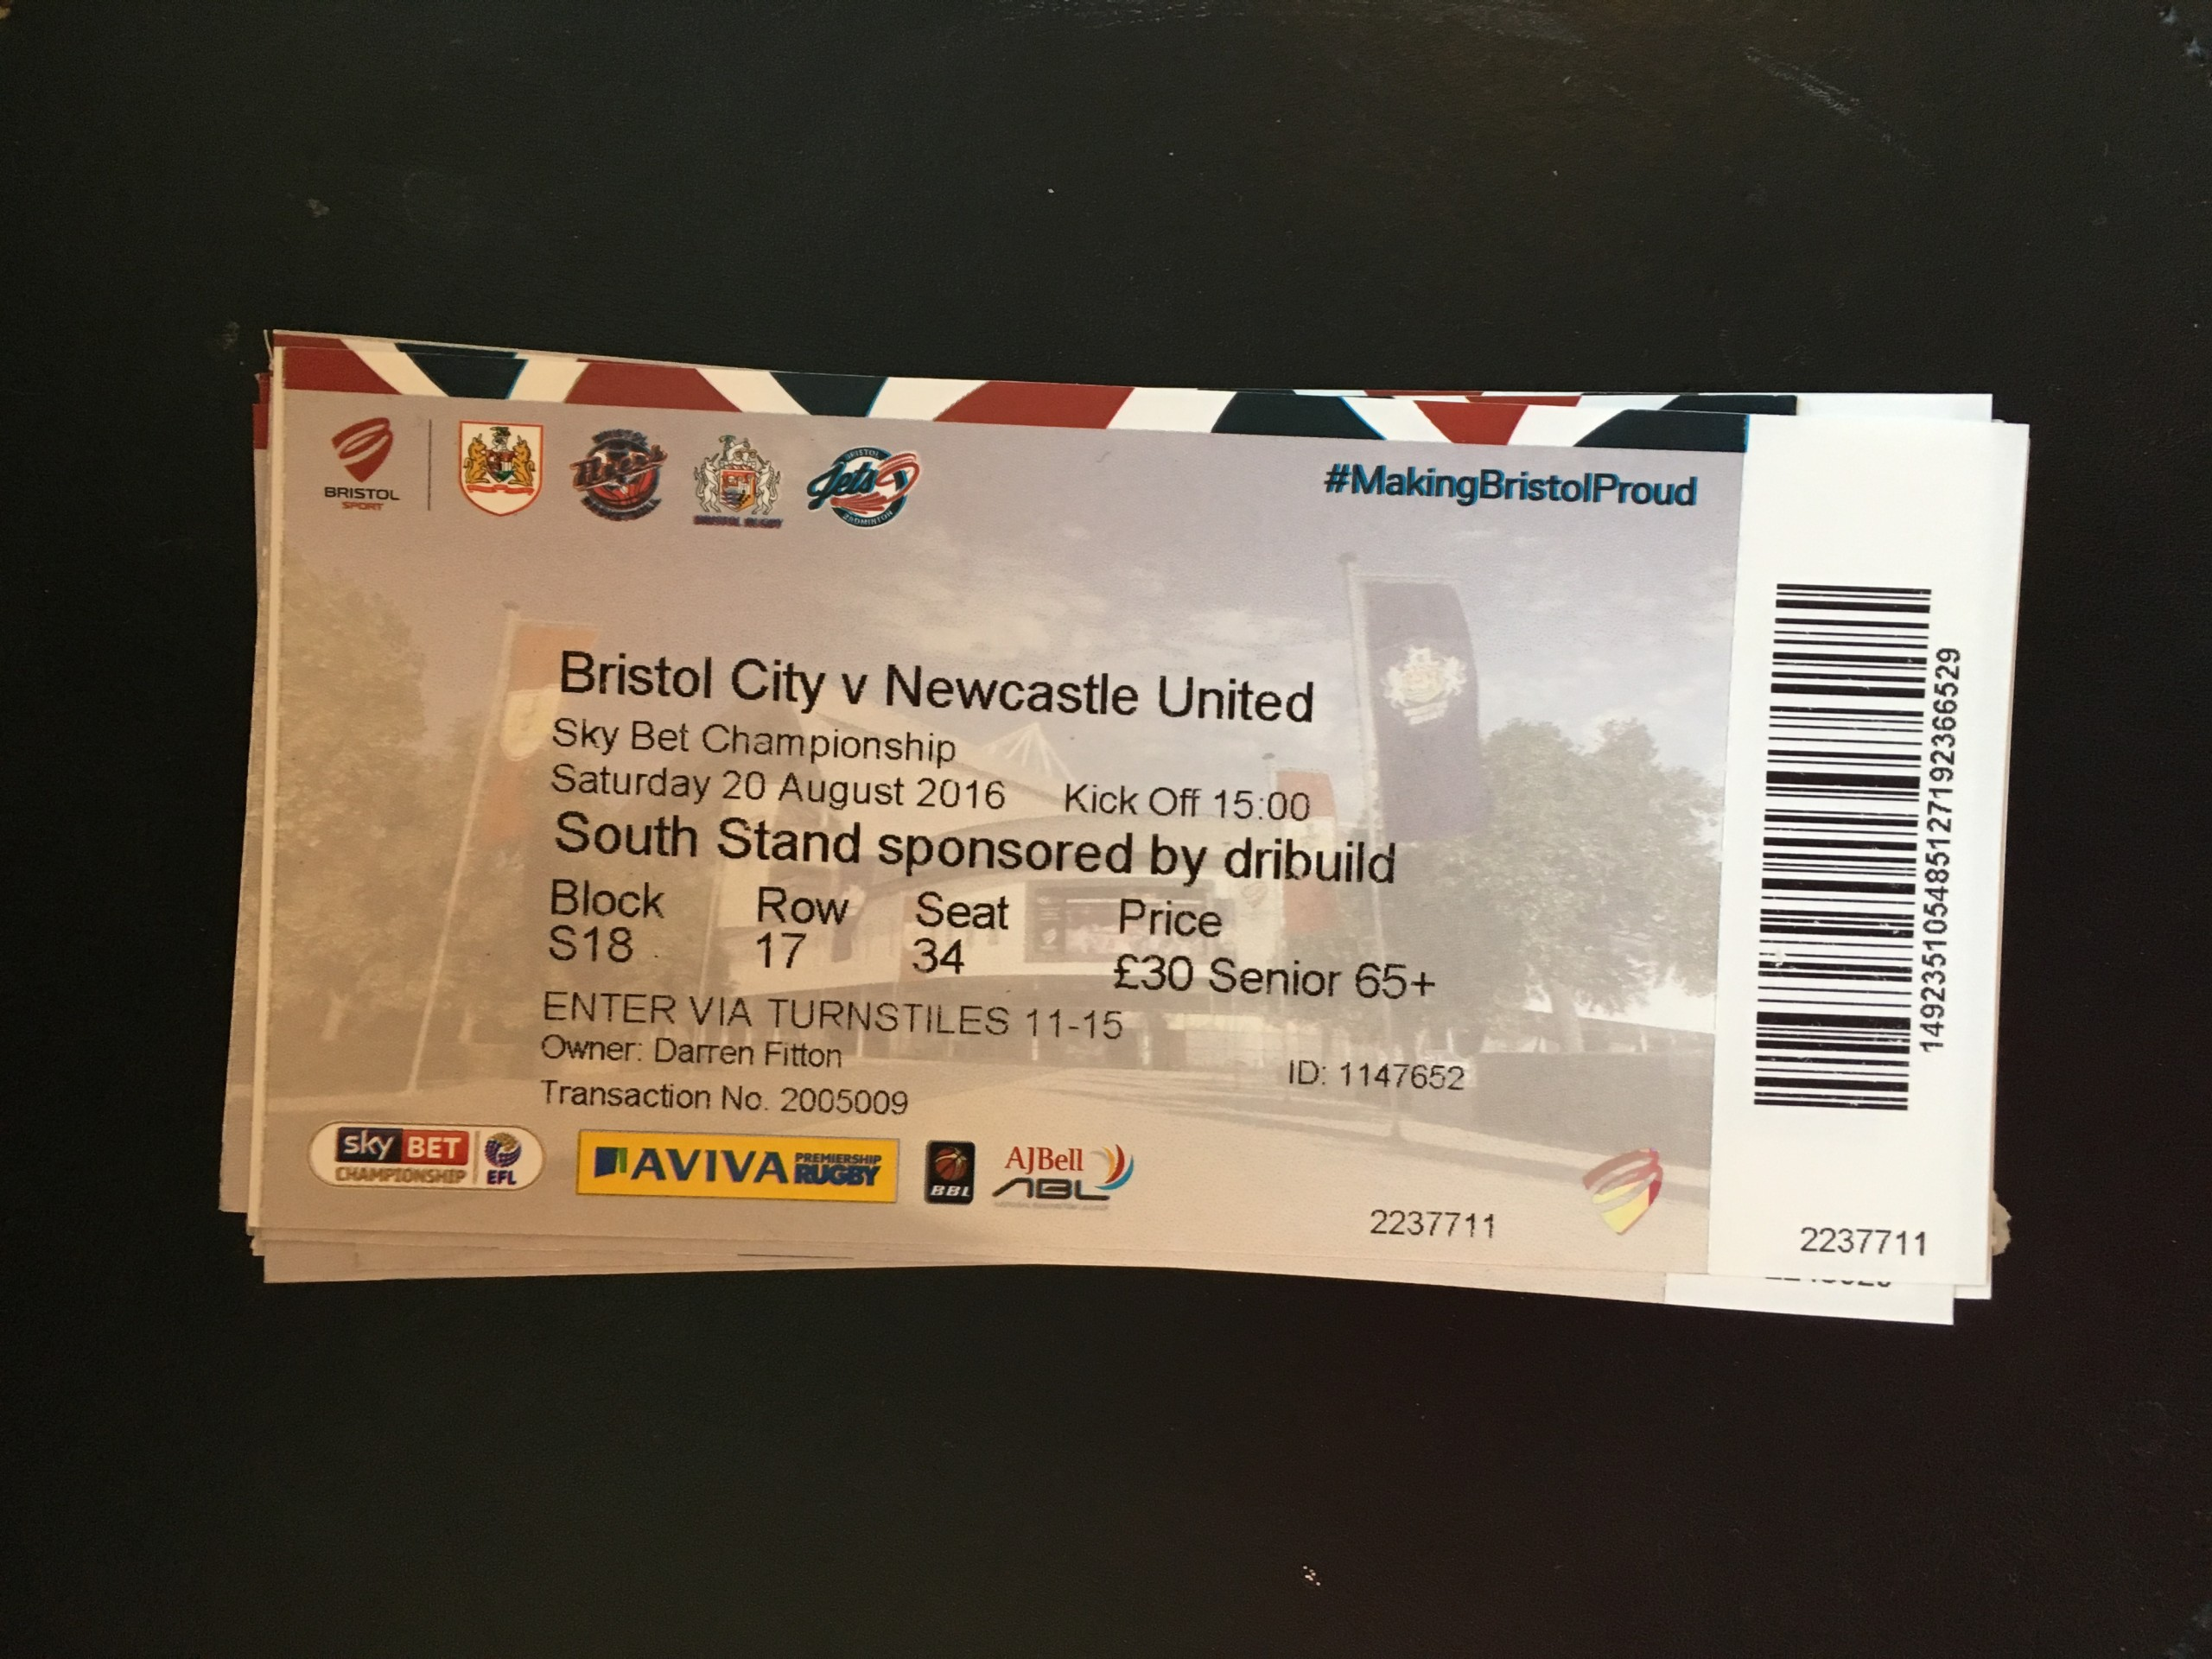 Bristol City v Newcastle United 20-08-2016 Ticket